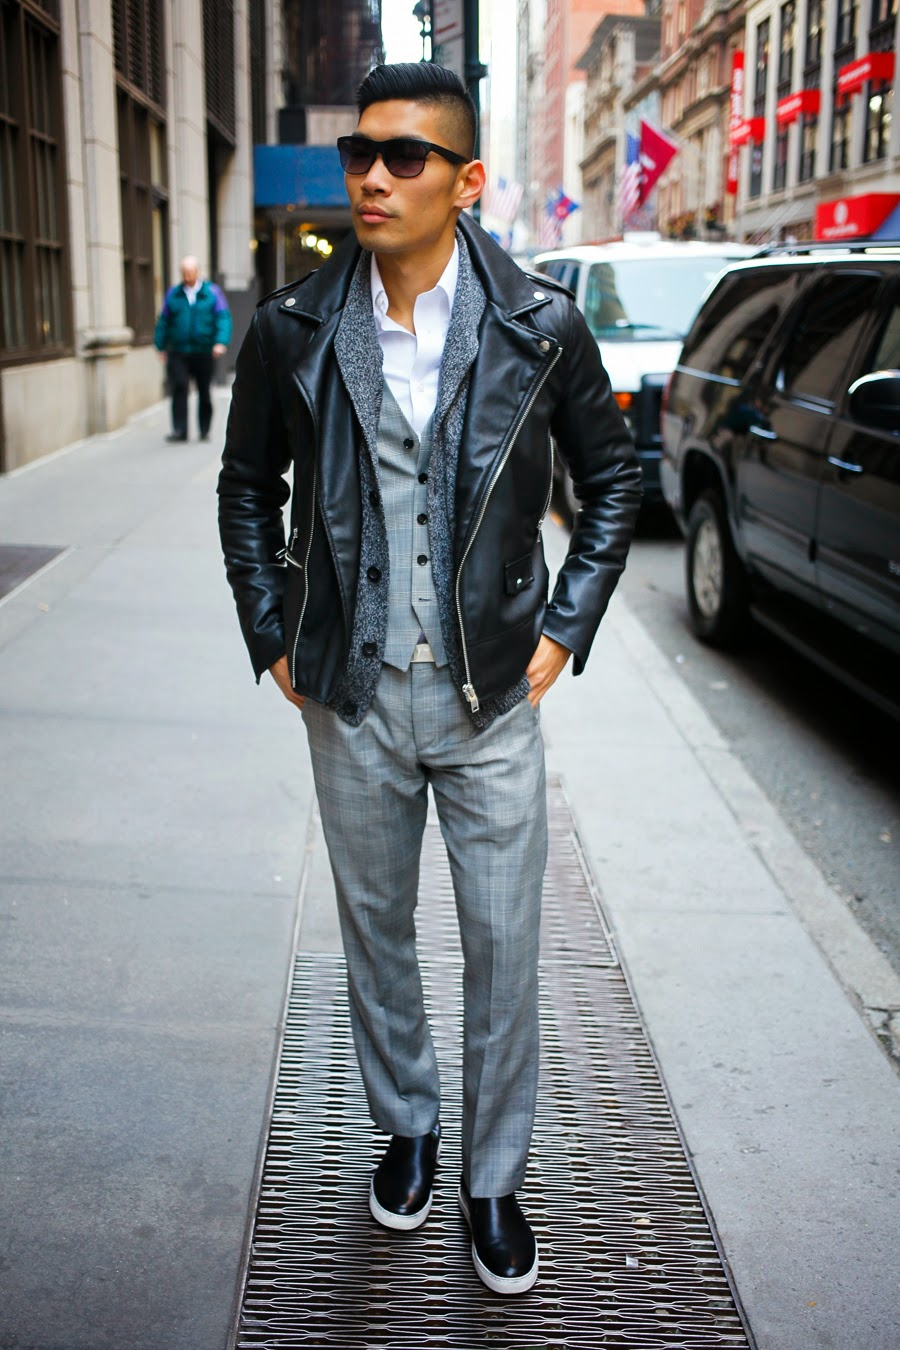 Levitate Style, Leo Chan - Ways to Wear a Leather Jacket